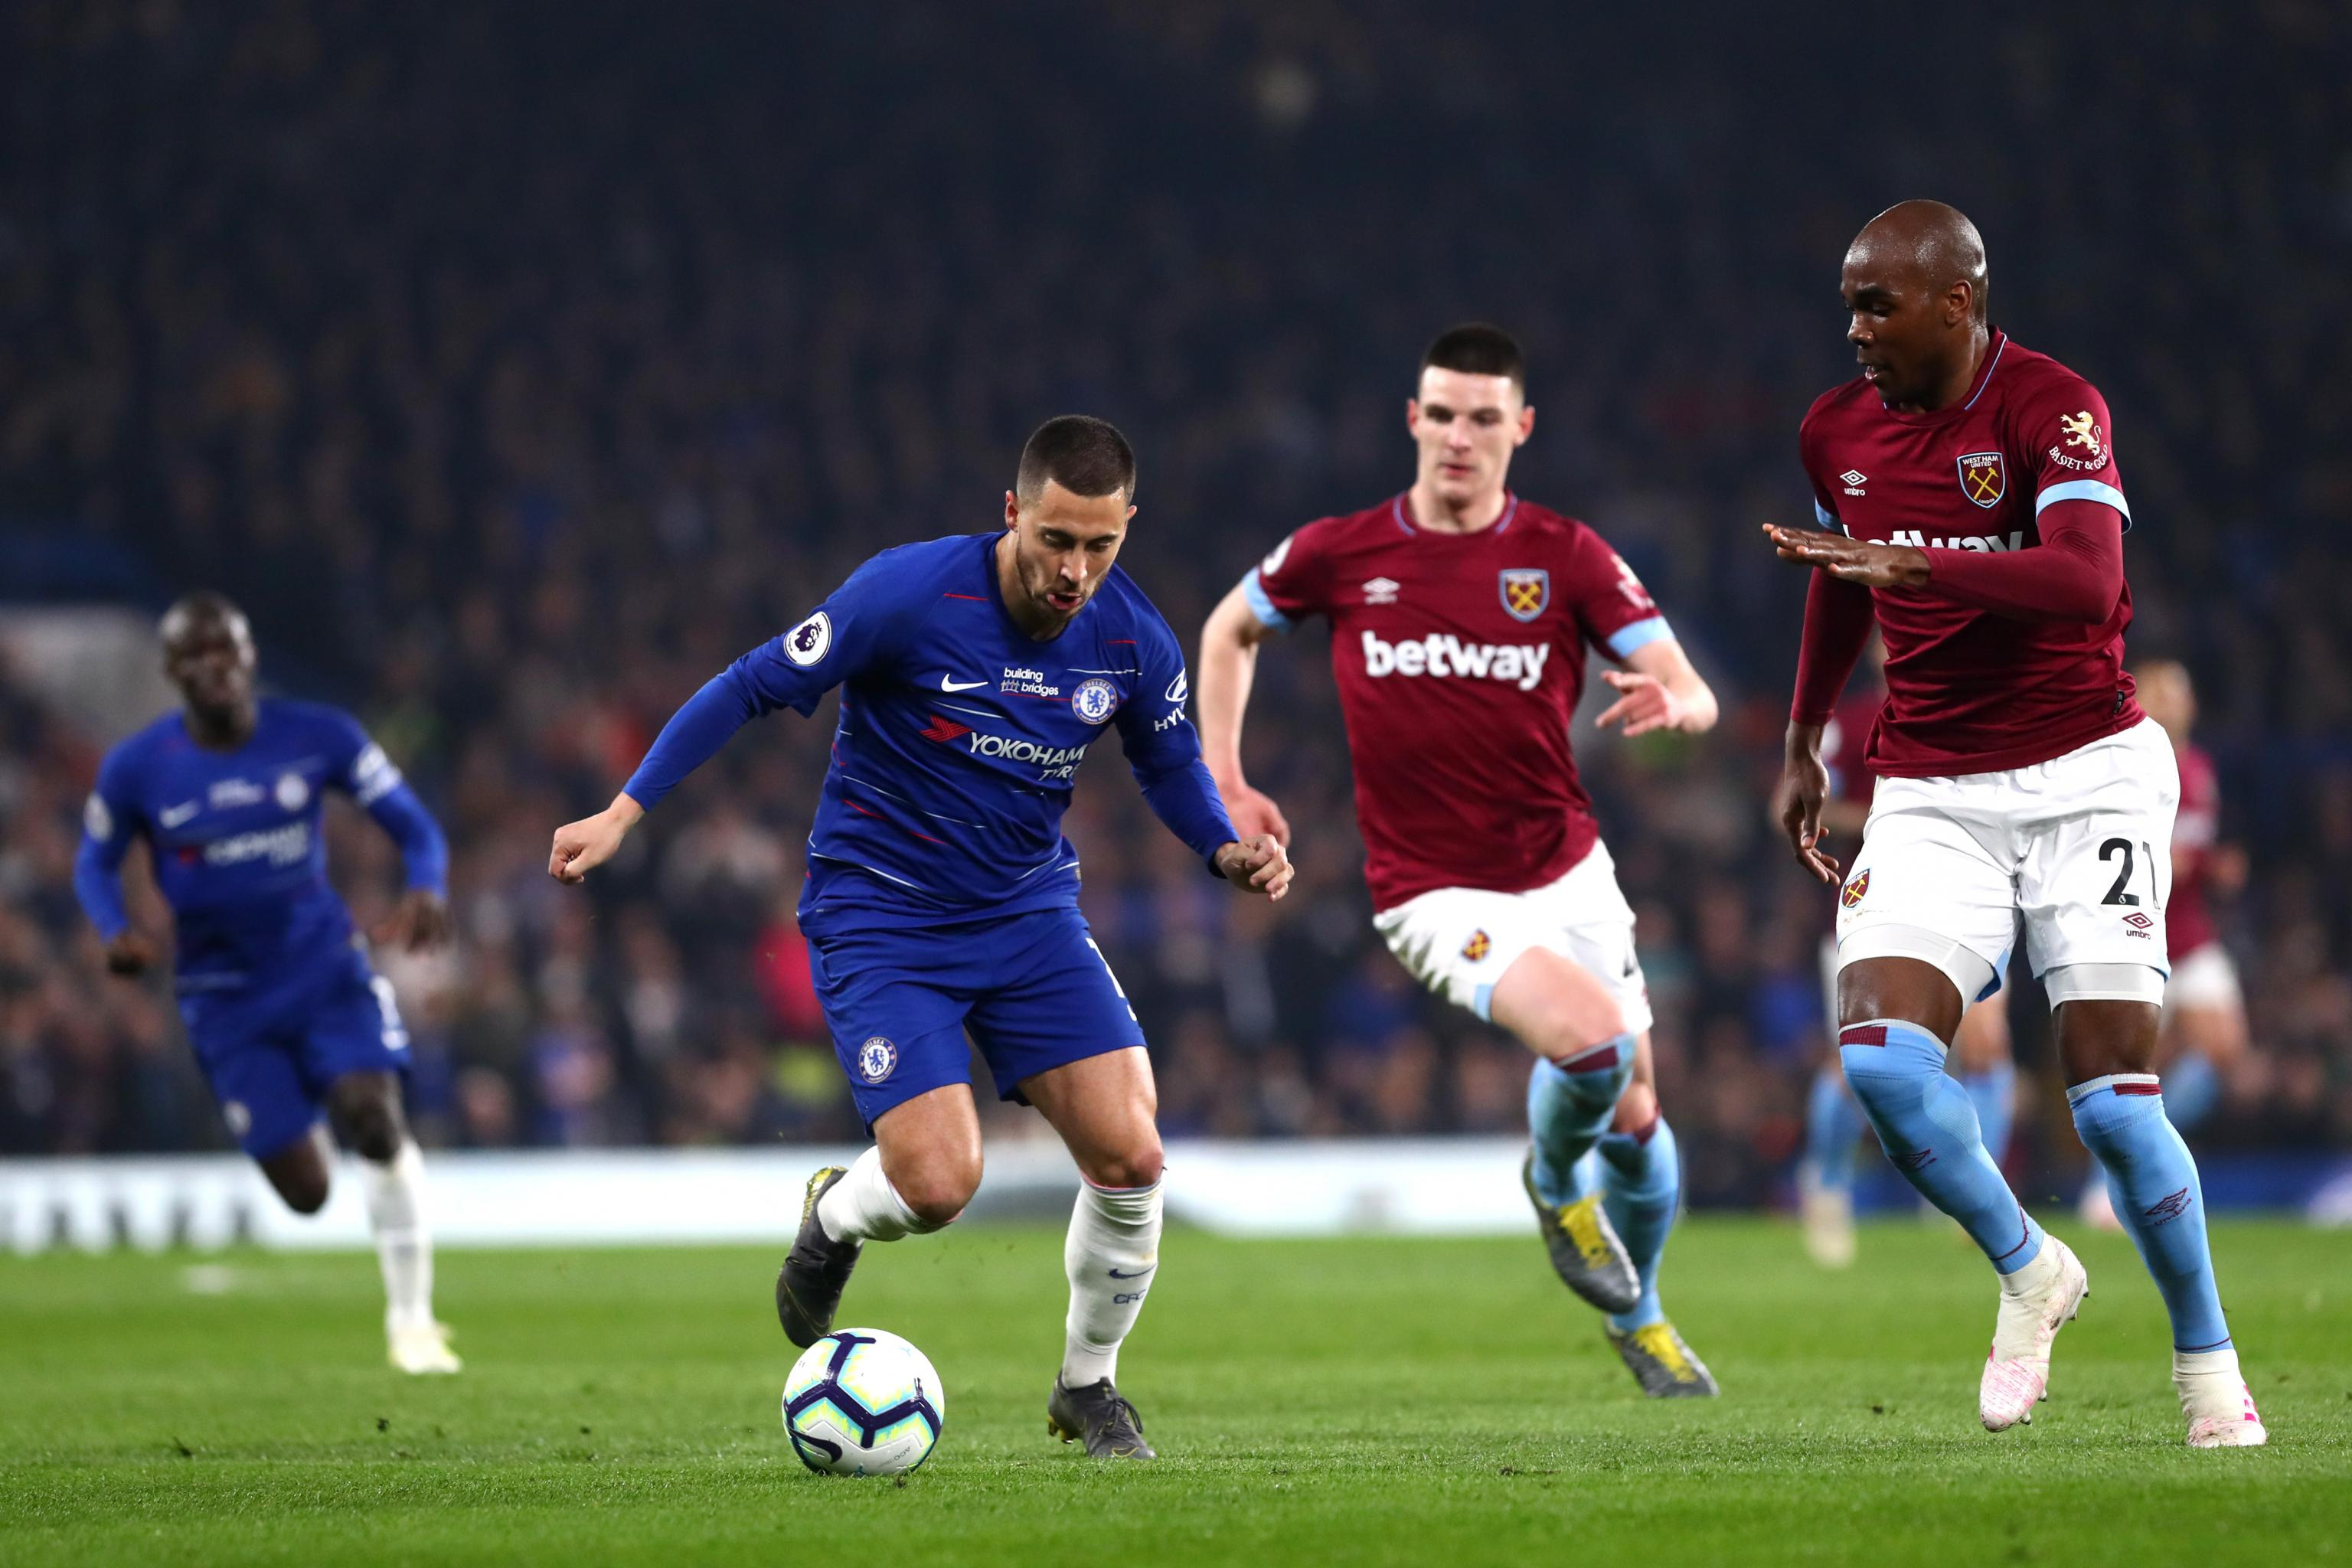 Premier League Table Final Week 33 2019 Standings Results And Week 34 Fixtures Bleacher Report Latest News Videos And Highlights